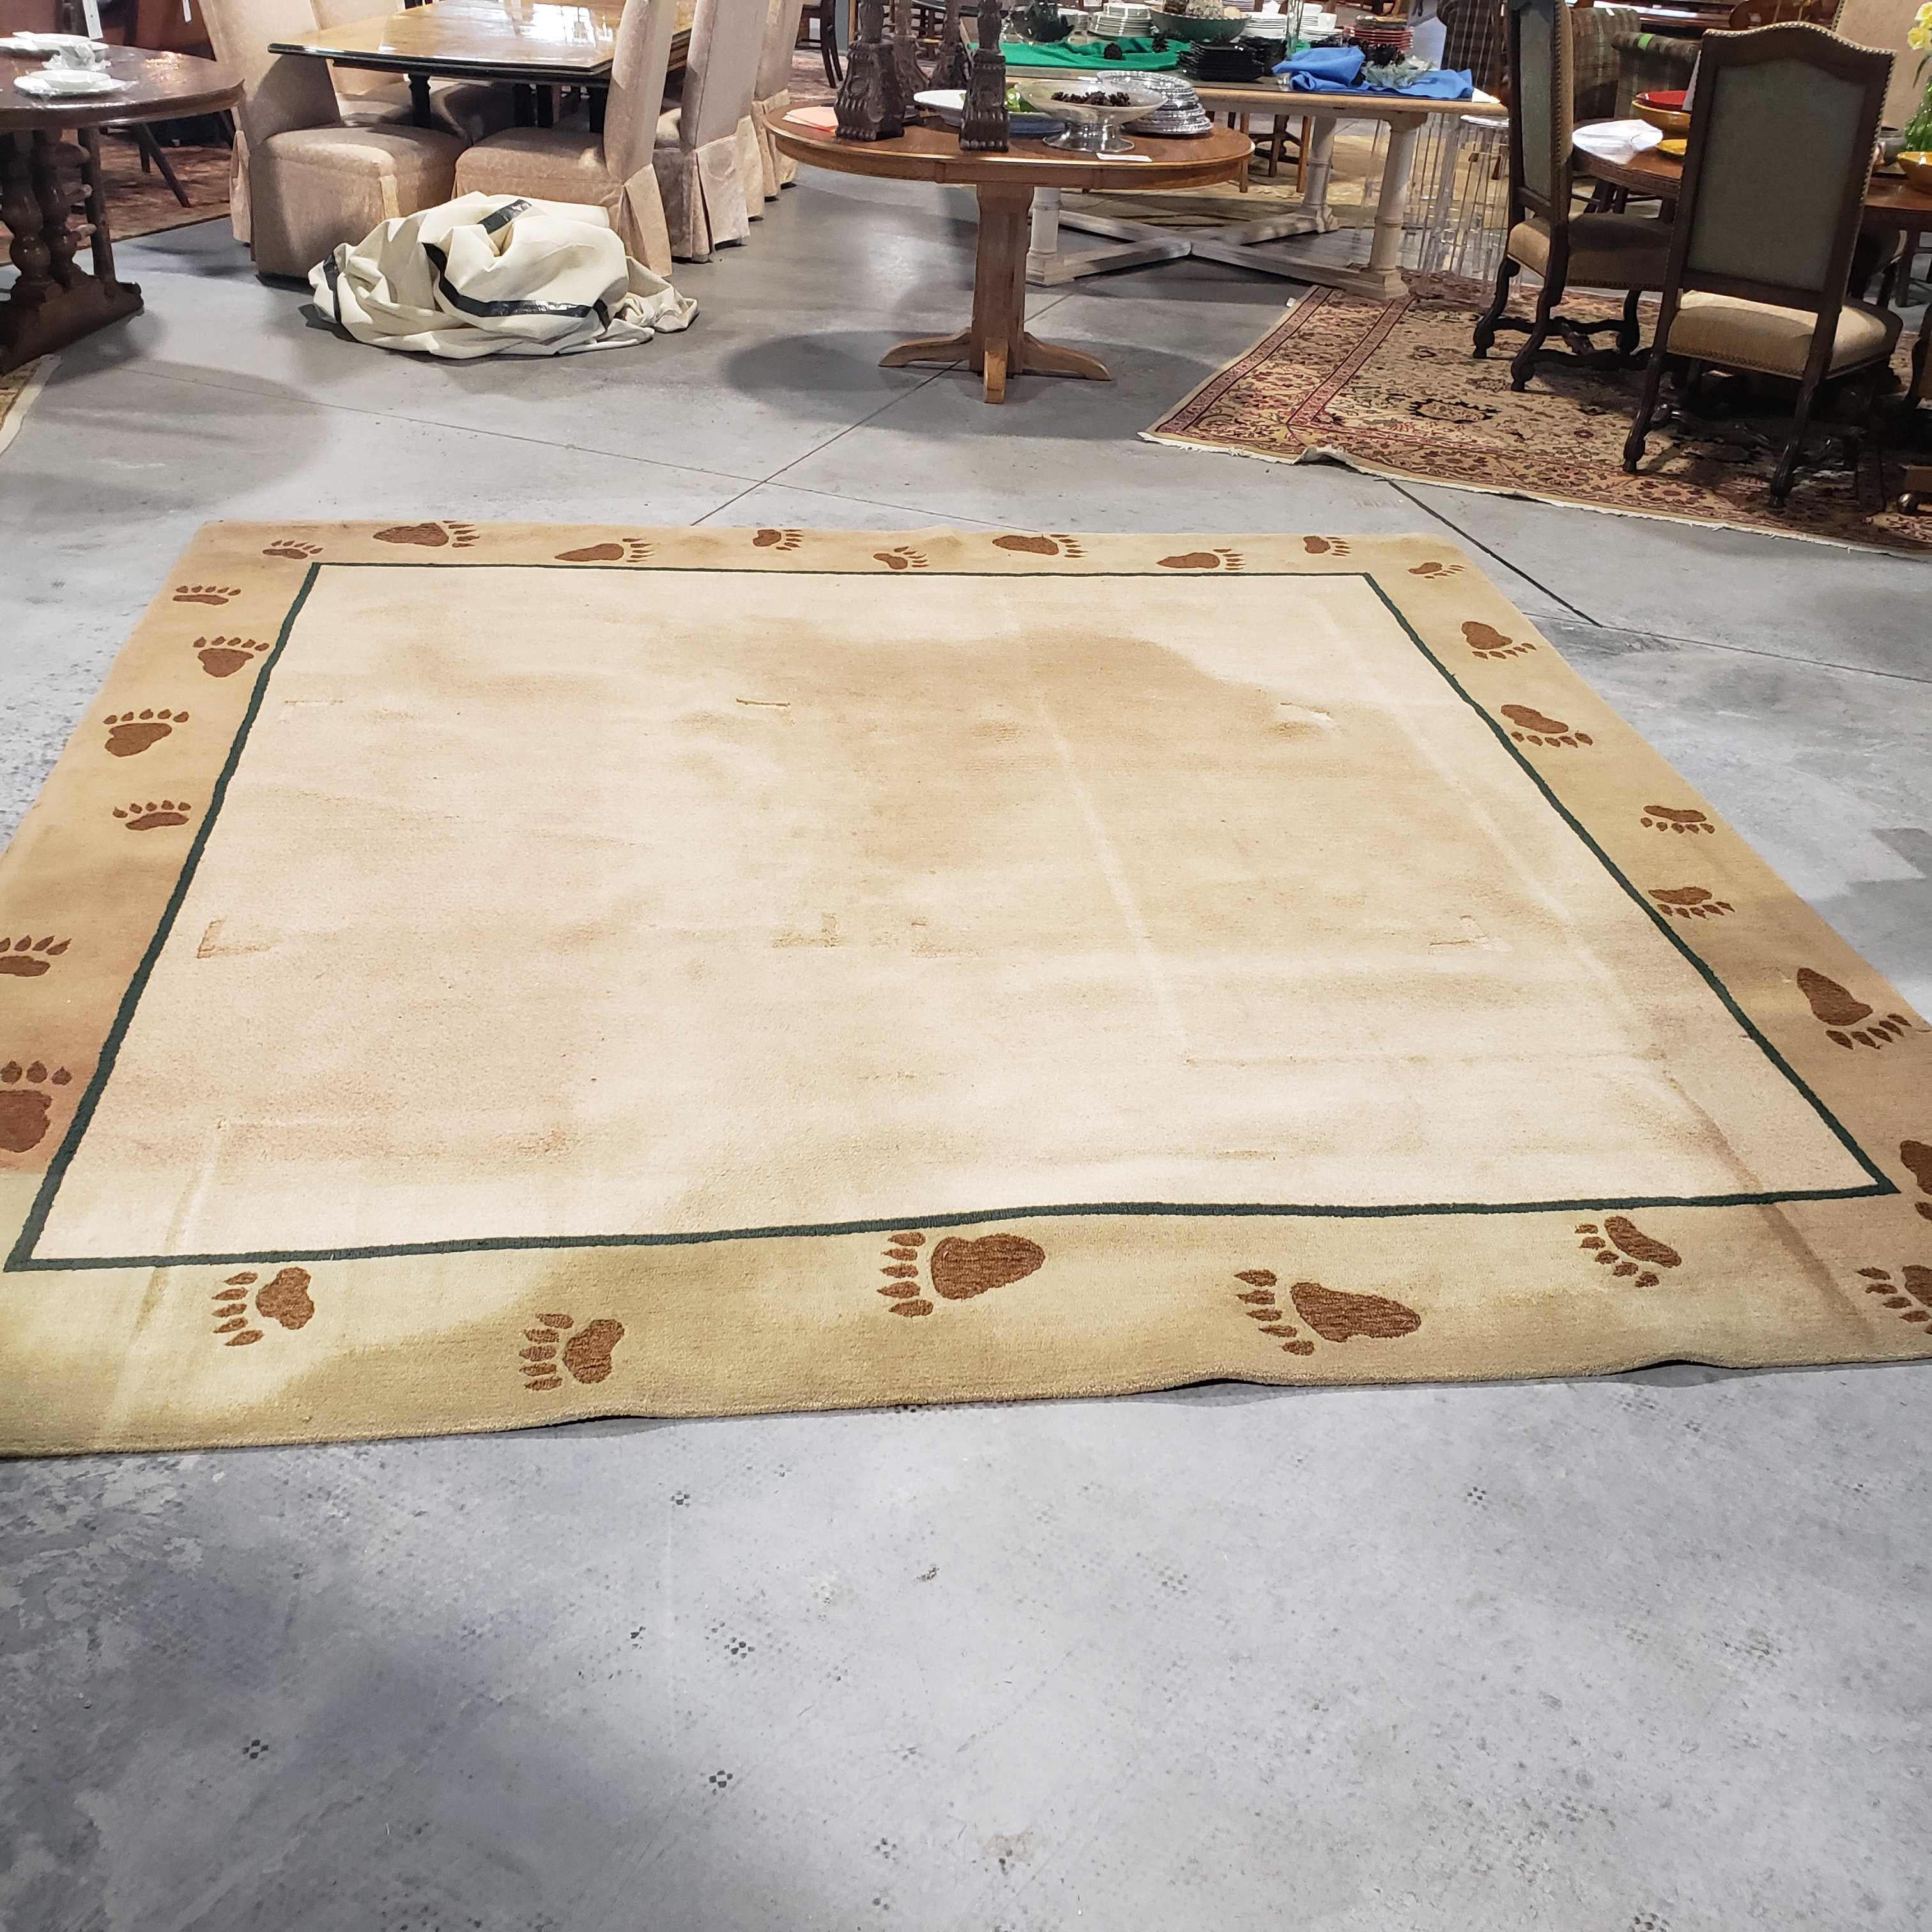 10.5'x 10.5' Allure Rug Studio Hand Made in Denver Bear Paw Wool Some Discoloration Rug